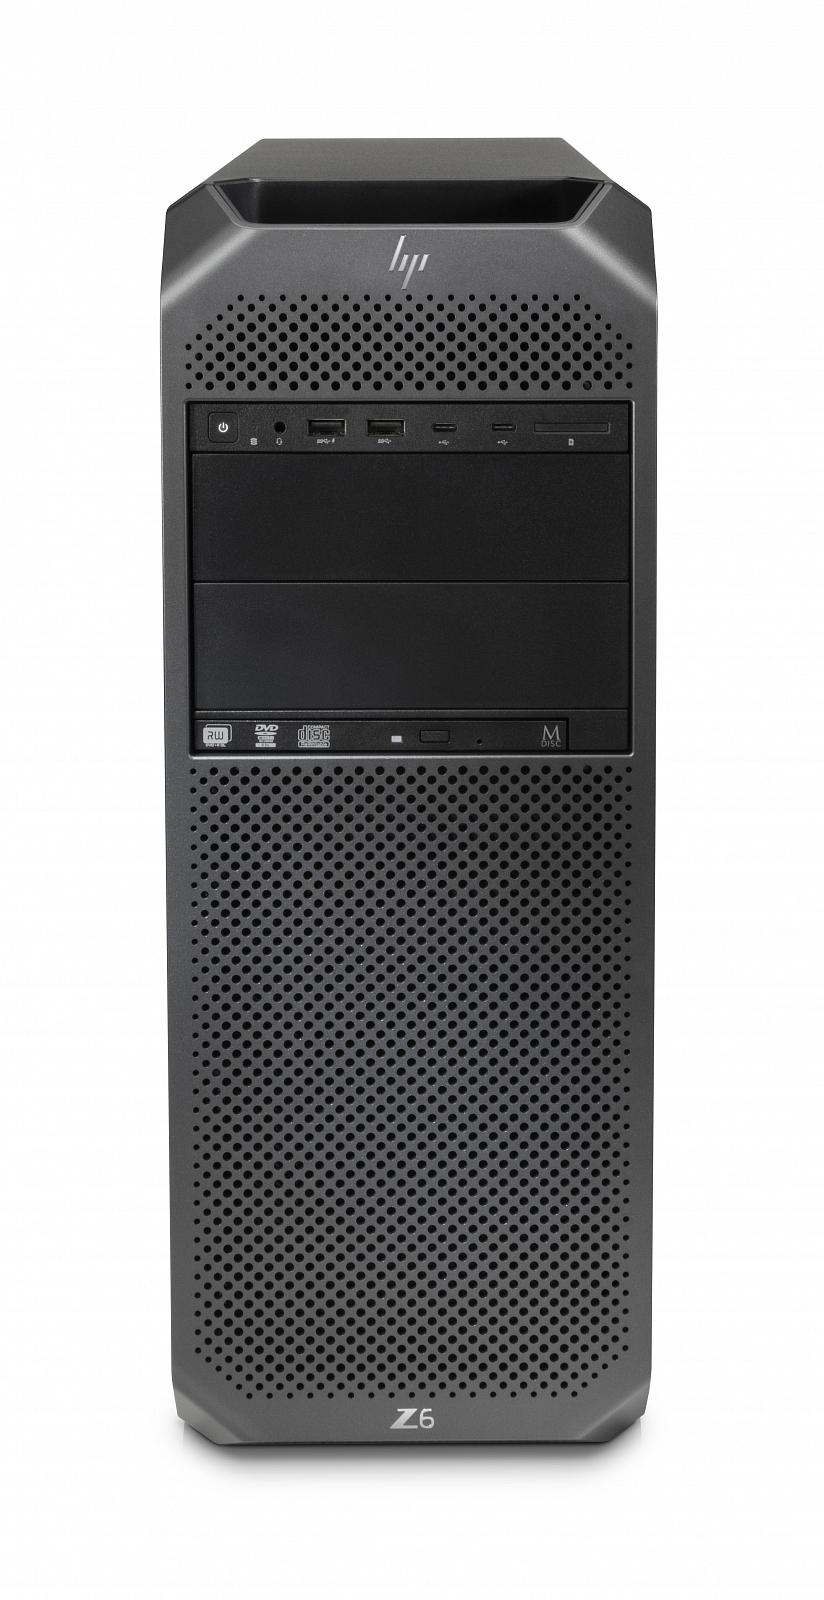 Компьютер HP Z6 G4 Workstation 2WU46EA фото #1